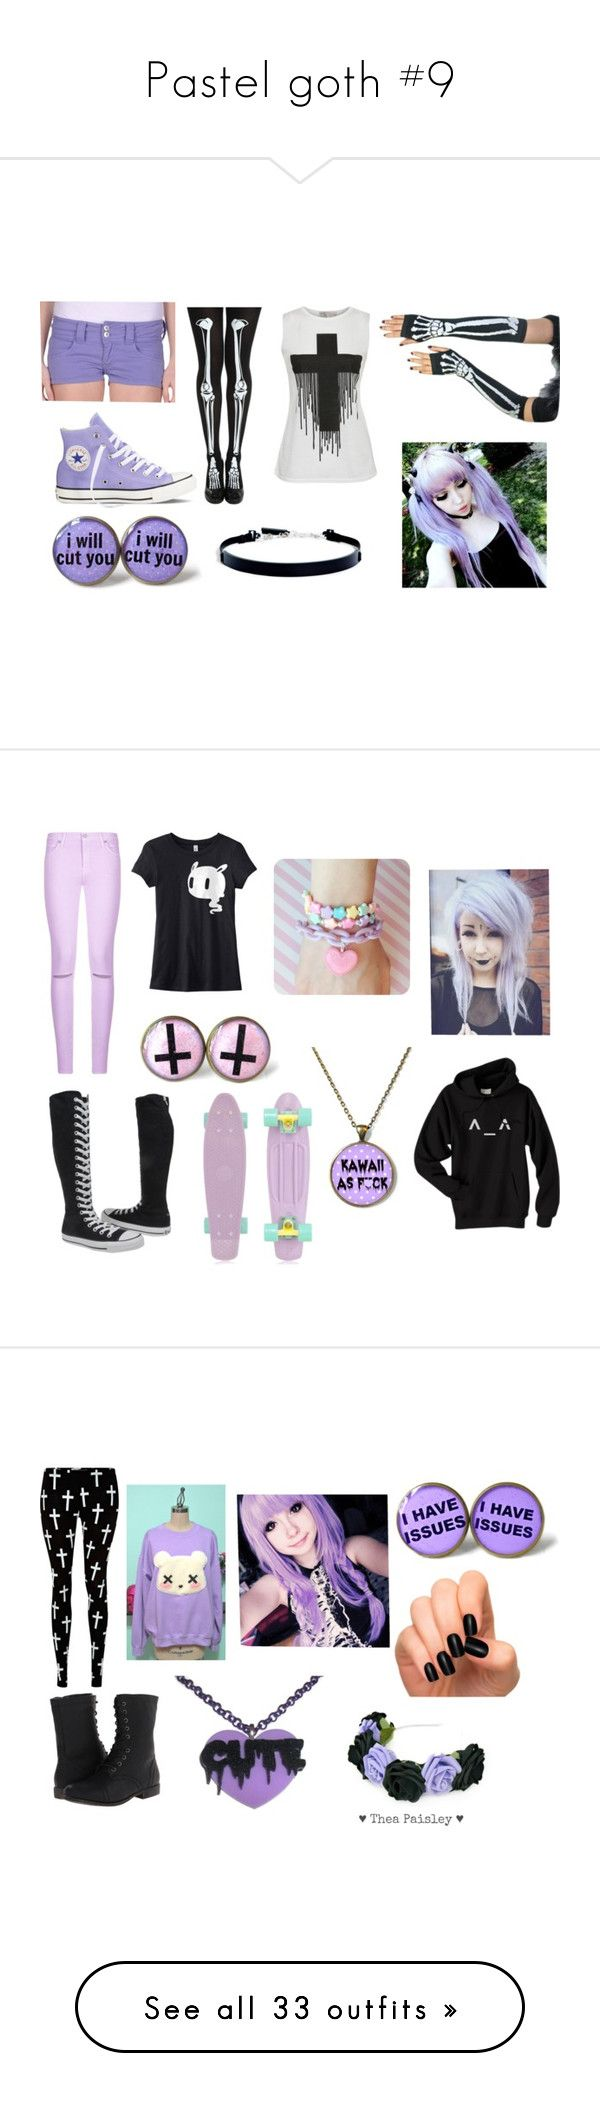 """""""Pastel goth #9"""" by ironically-a-strider21 ❤ liked on Polyvore featuring Cellar Door, Converse, Cameo Rose, DKNY, women's clothing, women's fashion, women, female, woman and misses"""